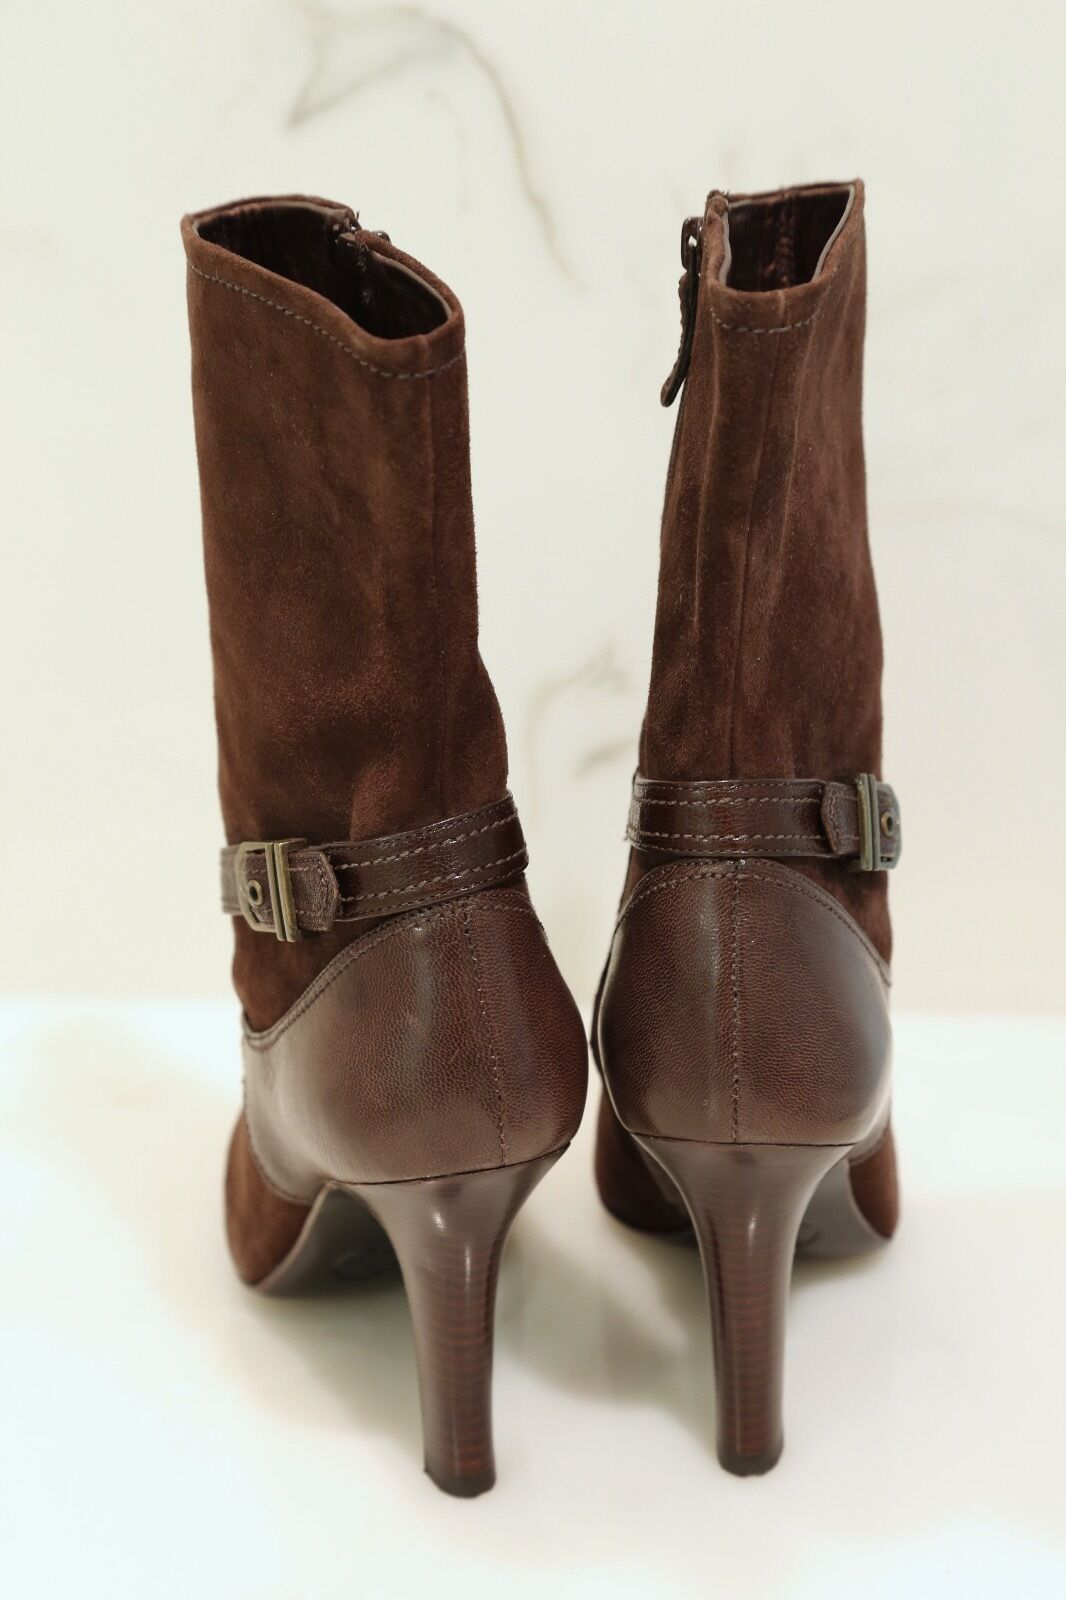 NWOB NWOB NWOB LADIES' COLE HAAN CHOCOLATE BROWN SUEDE ANKLE BOOTS - Size 9B 111f2a